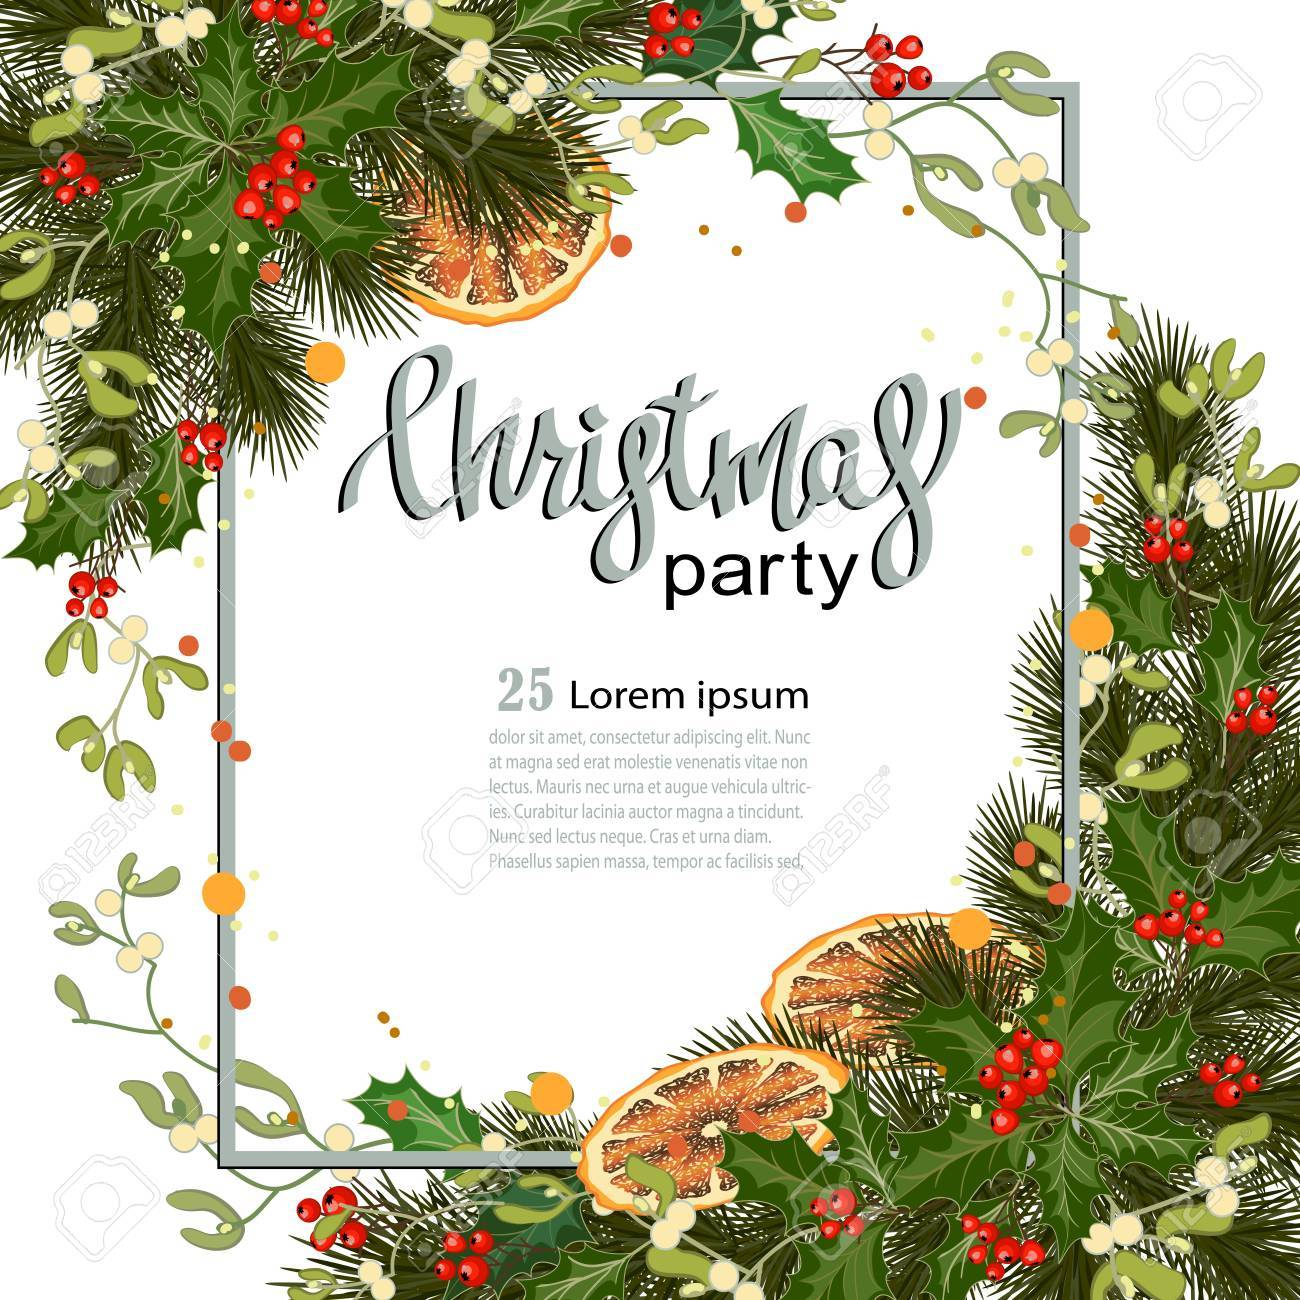 Merry christmas greeting card with traditional decorations and merry christmas greeting card with traditional decorations and place for message christmas background with branches kristyandbryce Gallery